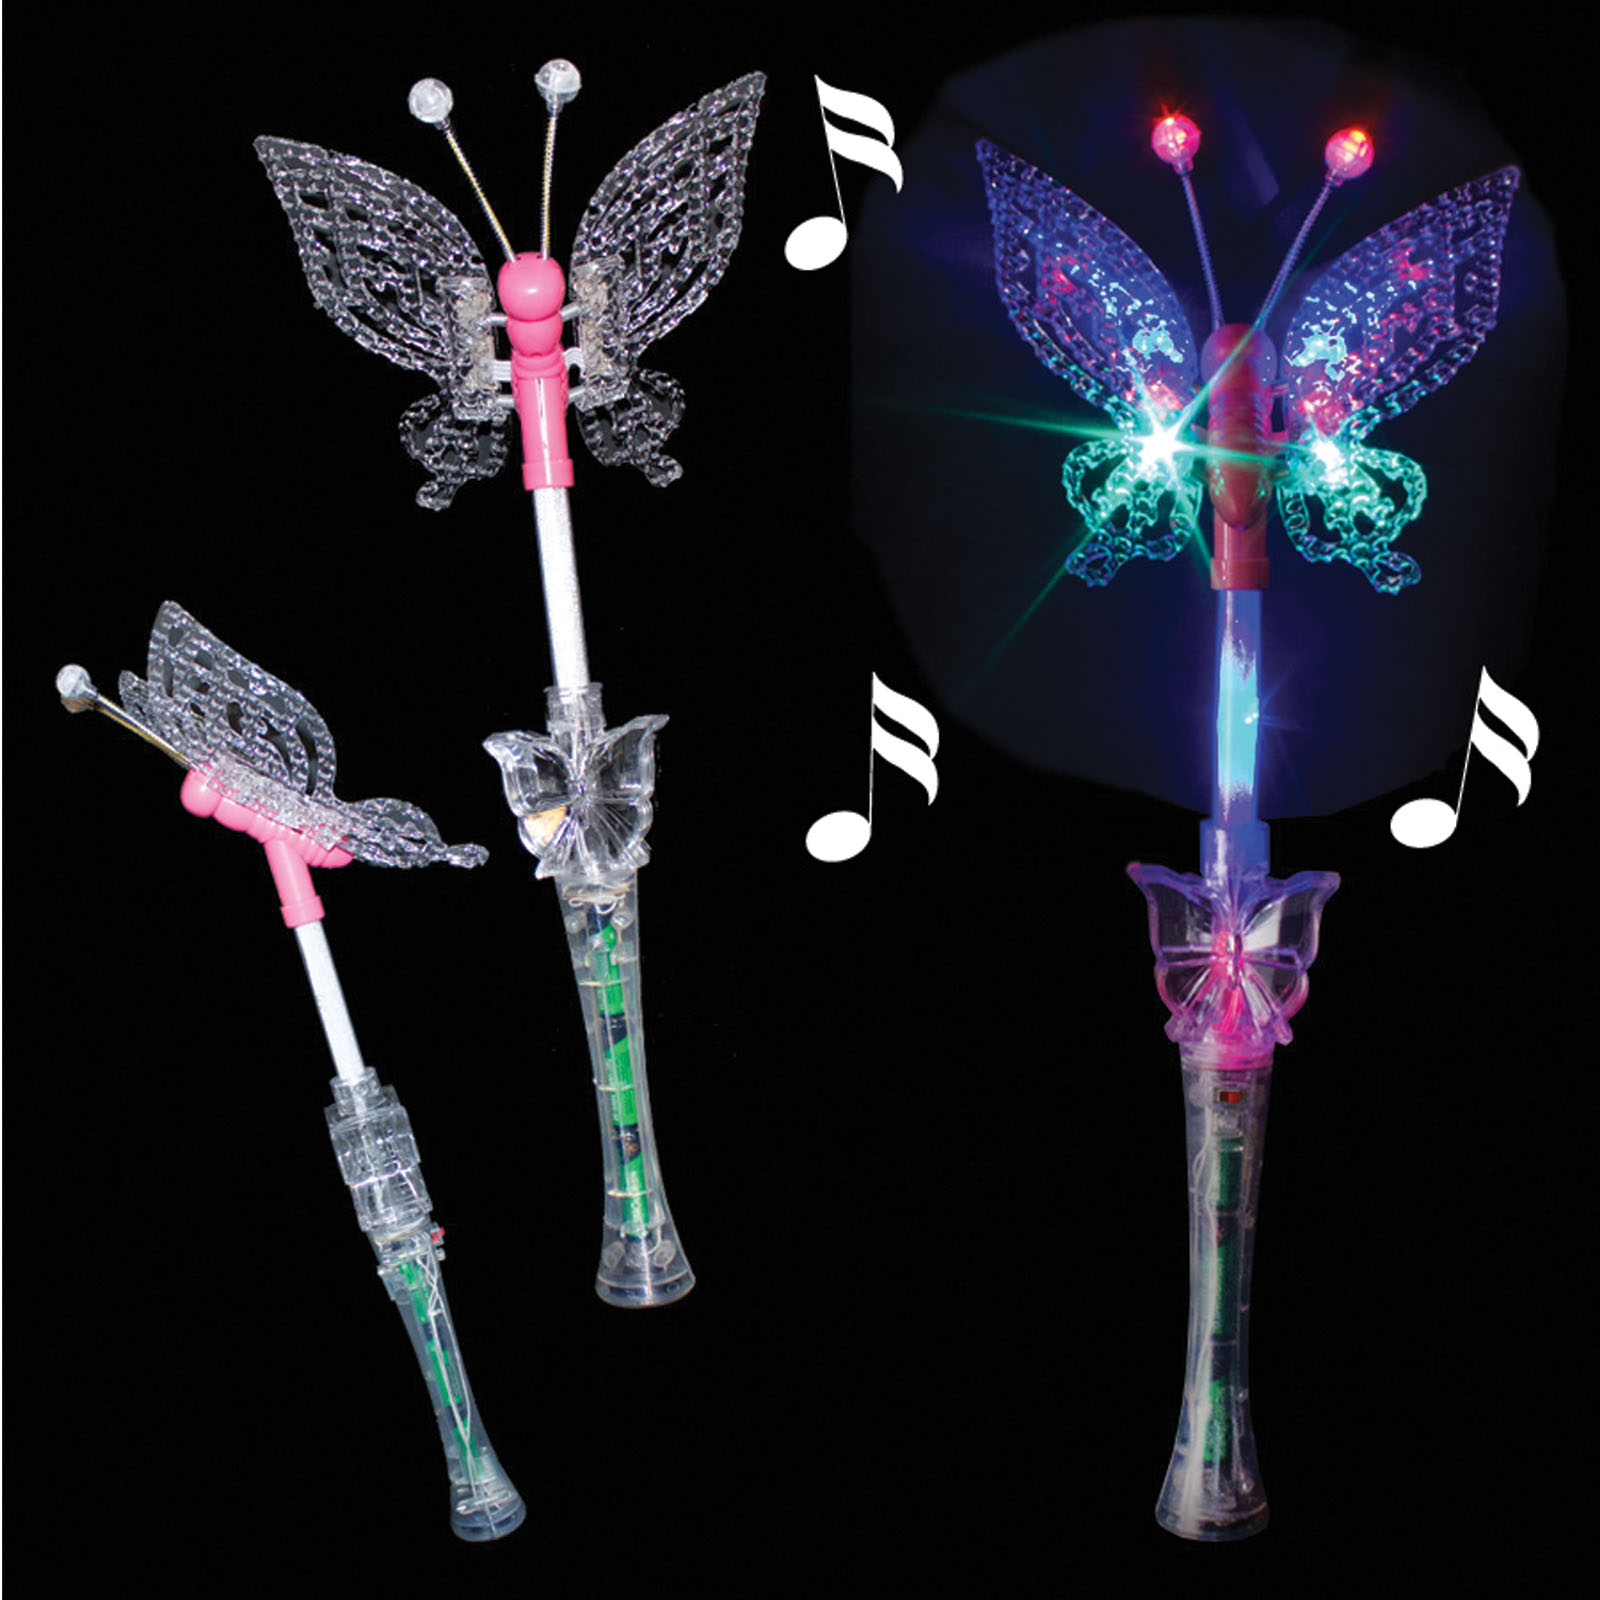 Supreme Colorful Light-Up Butterfly 18in LED Wand w Music, Pink